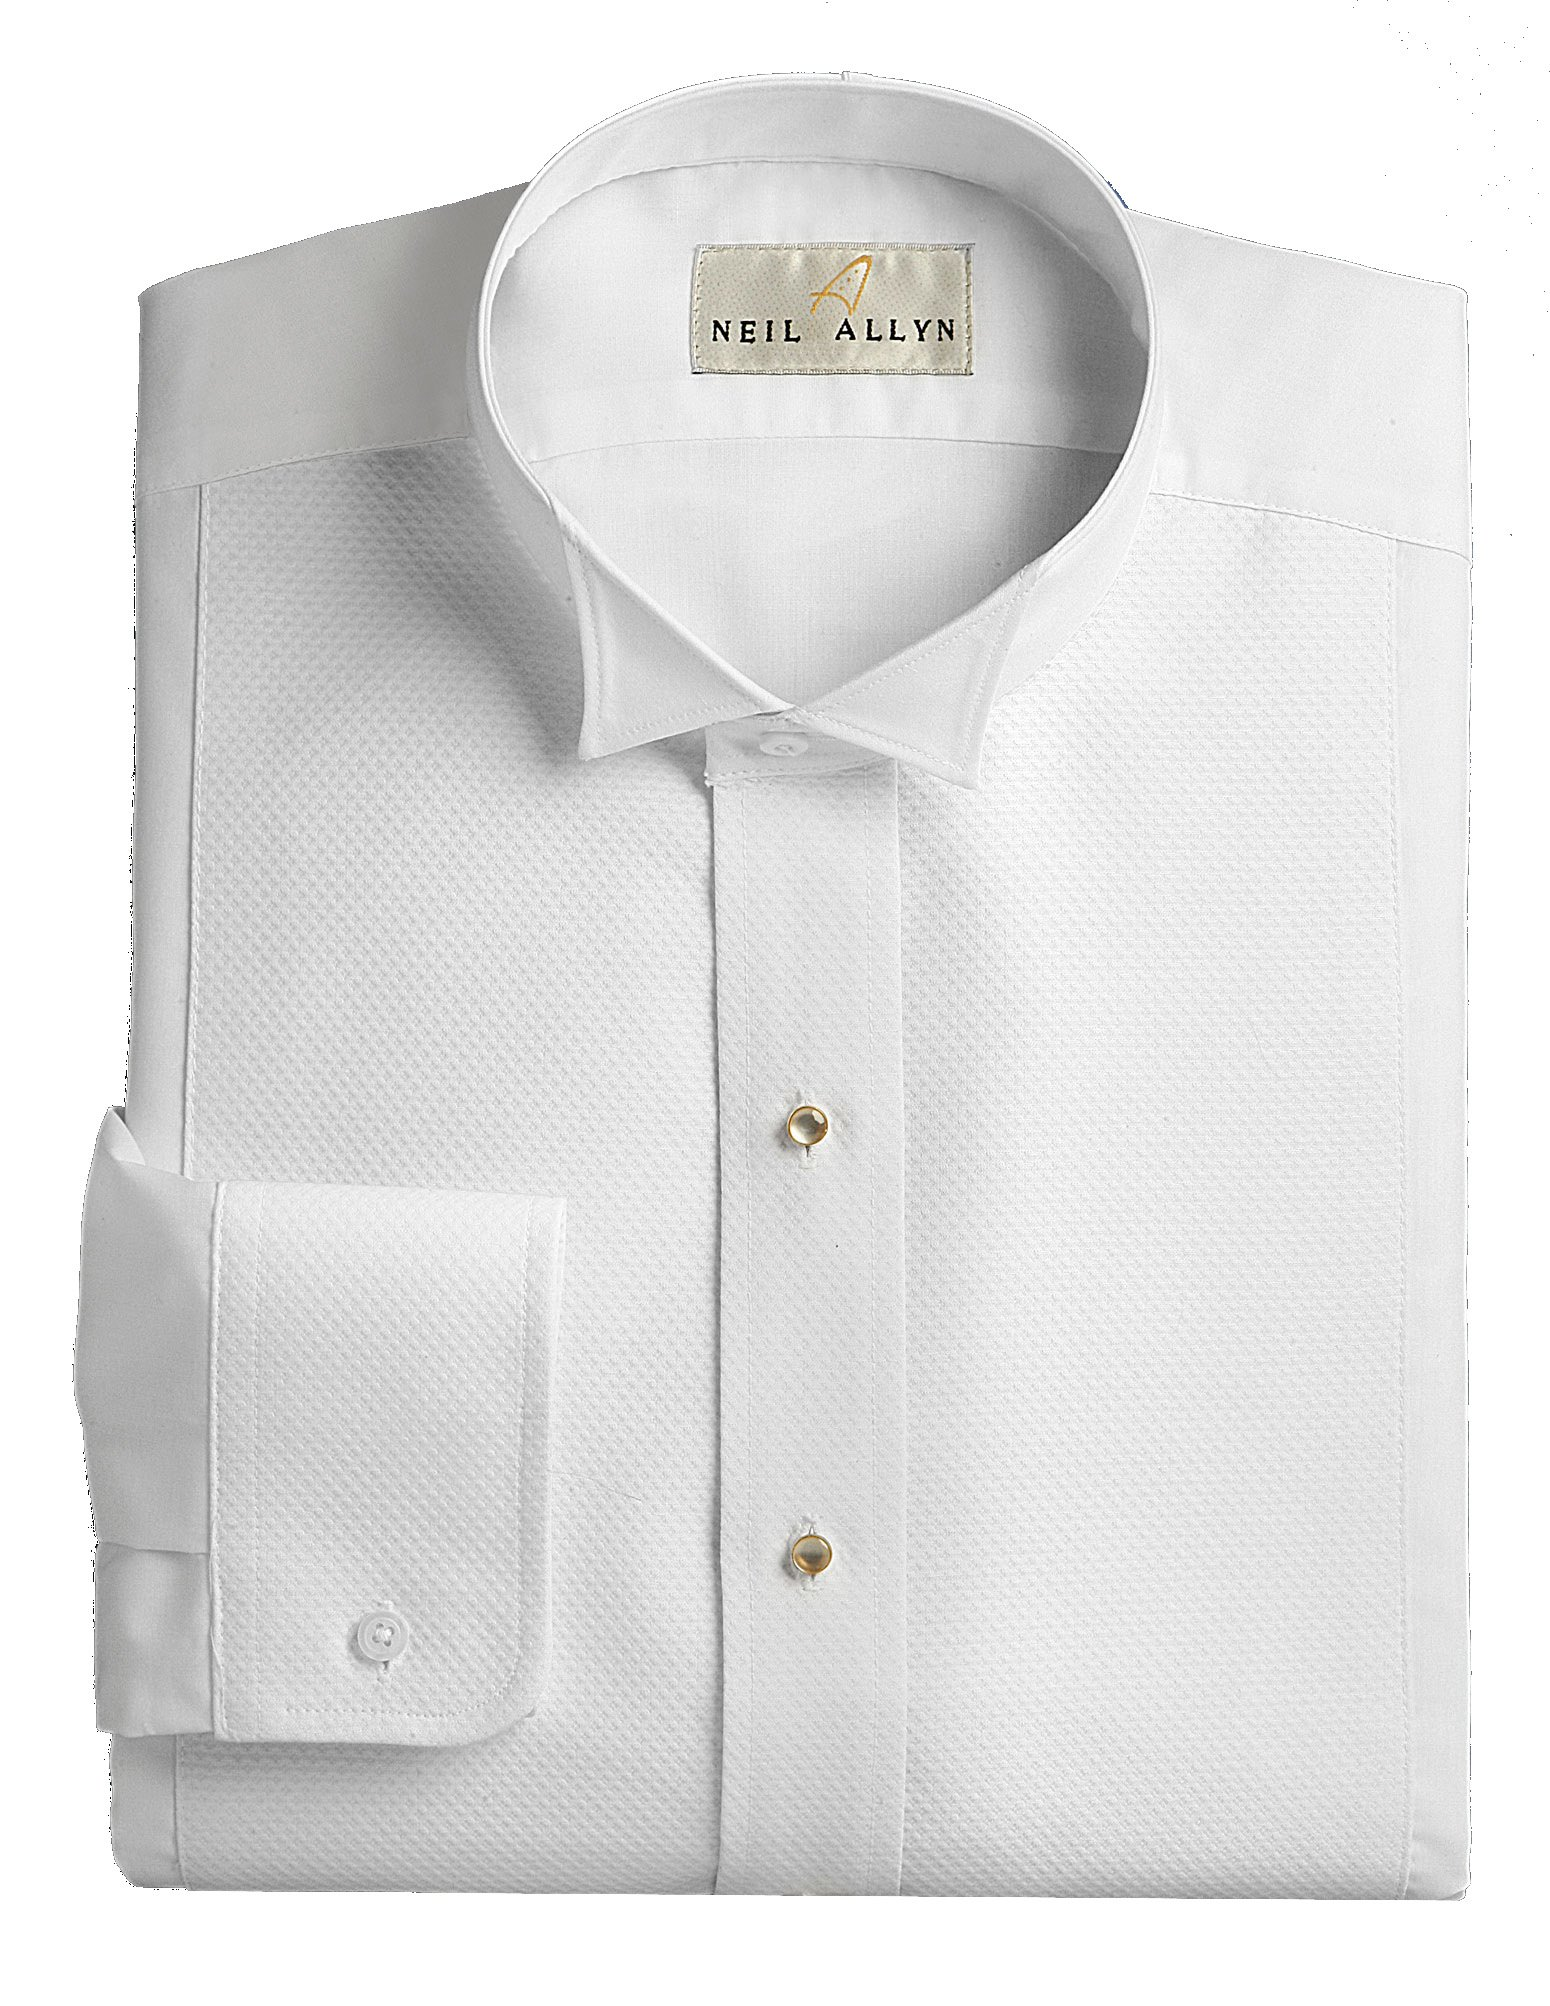 Wing Collar Tuxedo Shirt, Pique Bib Front, 65% Polyester 35% Cotton White (15.5 - 32/33) by Neil Allyn